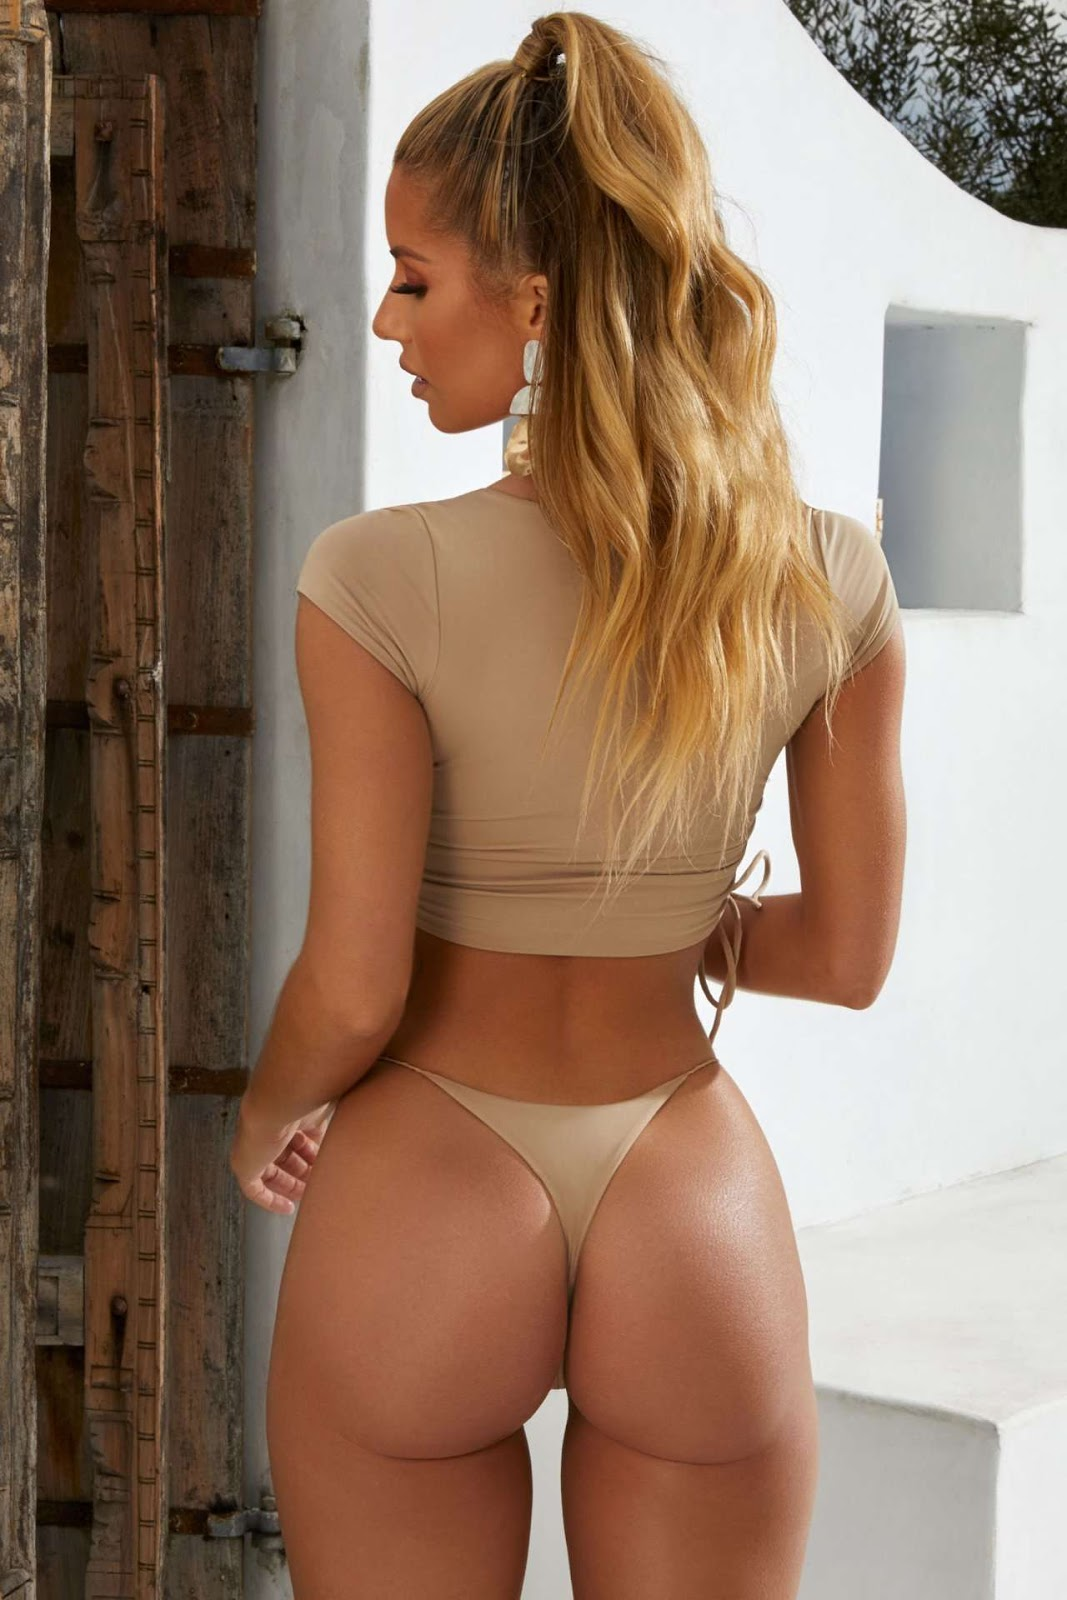 Sierra Skye Super Hot Tanga Pose - Sierra Skye Super Hot Tanga Pose